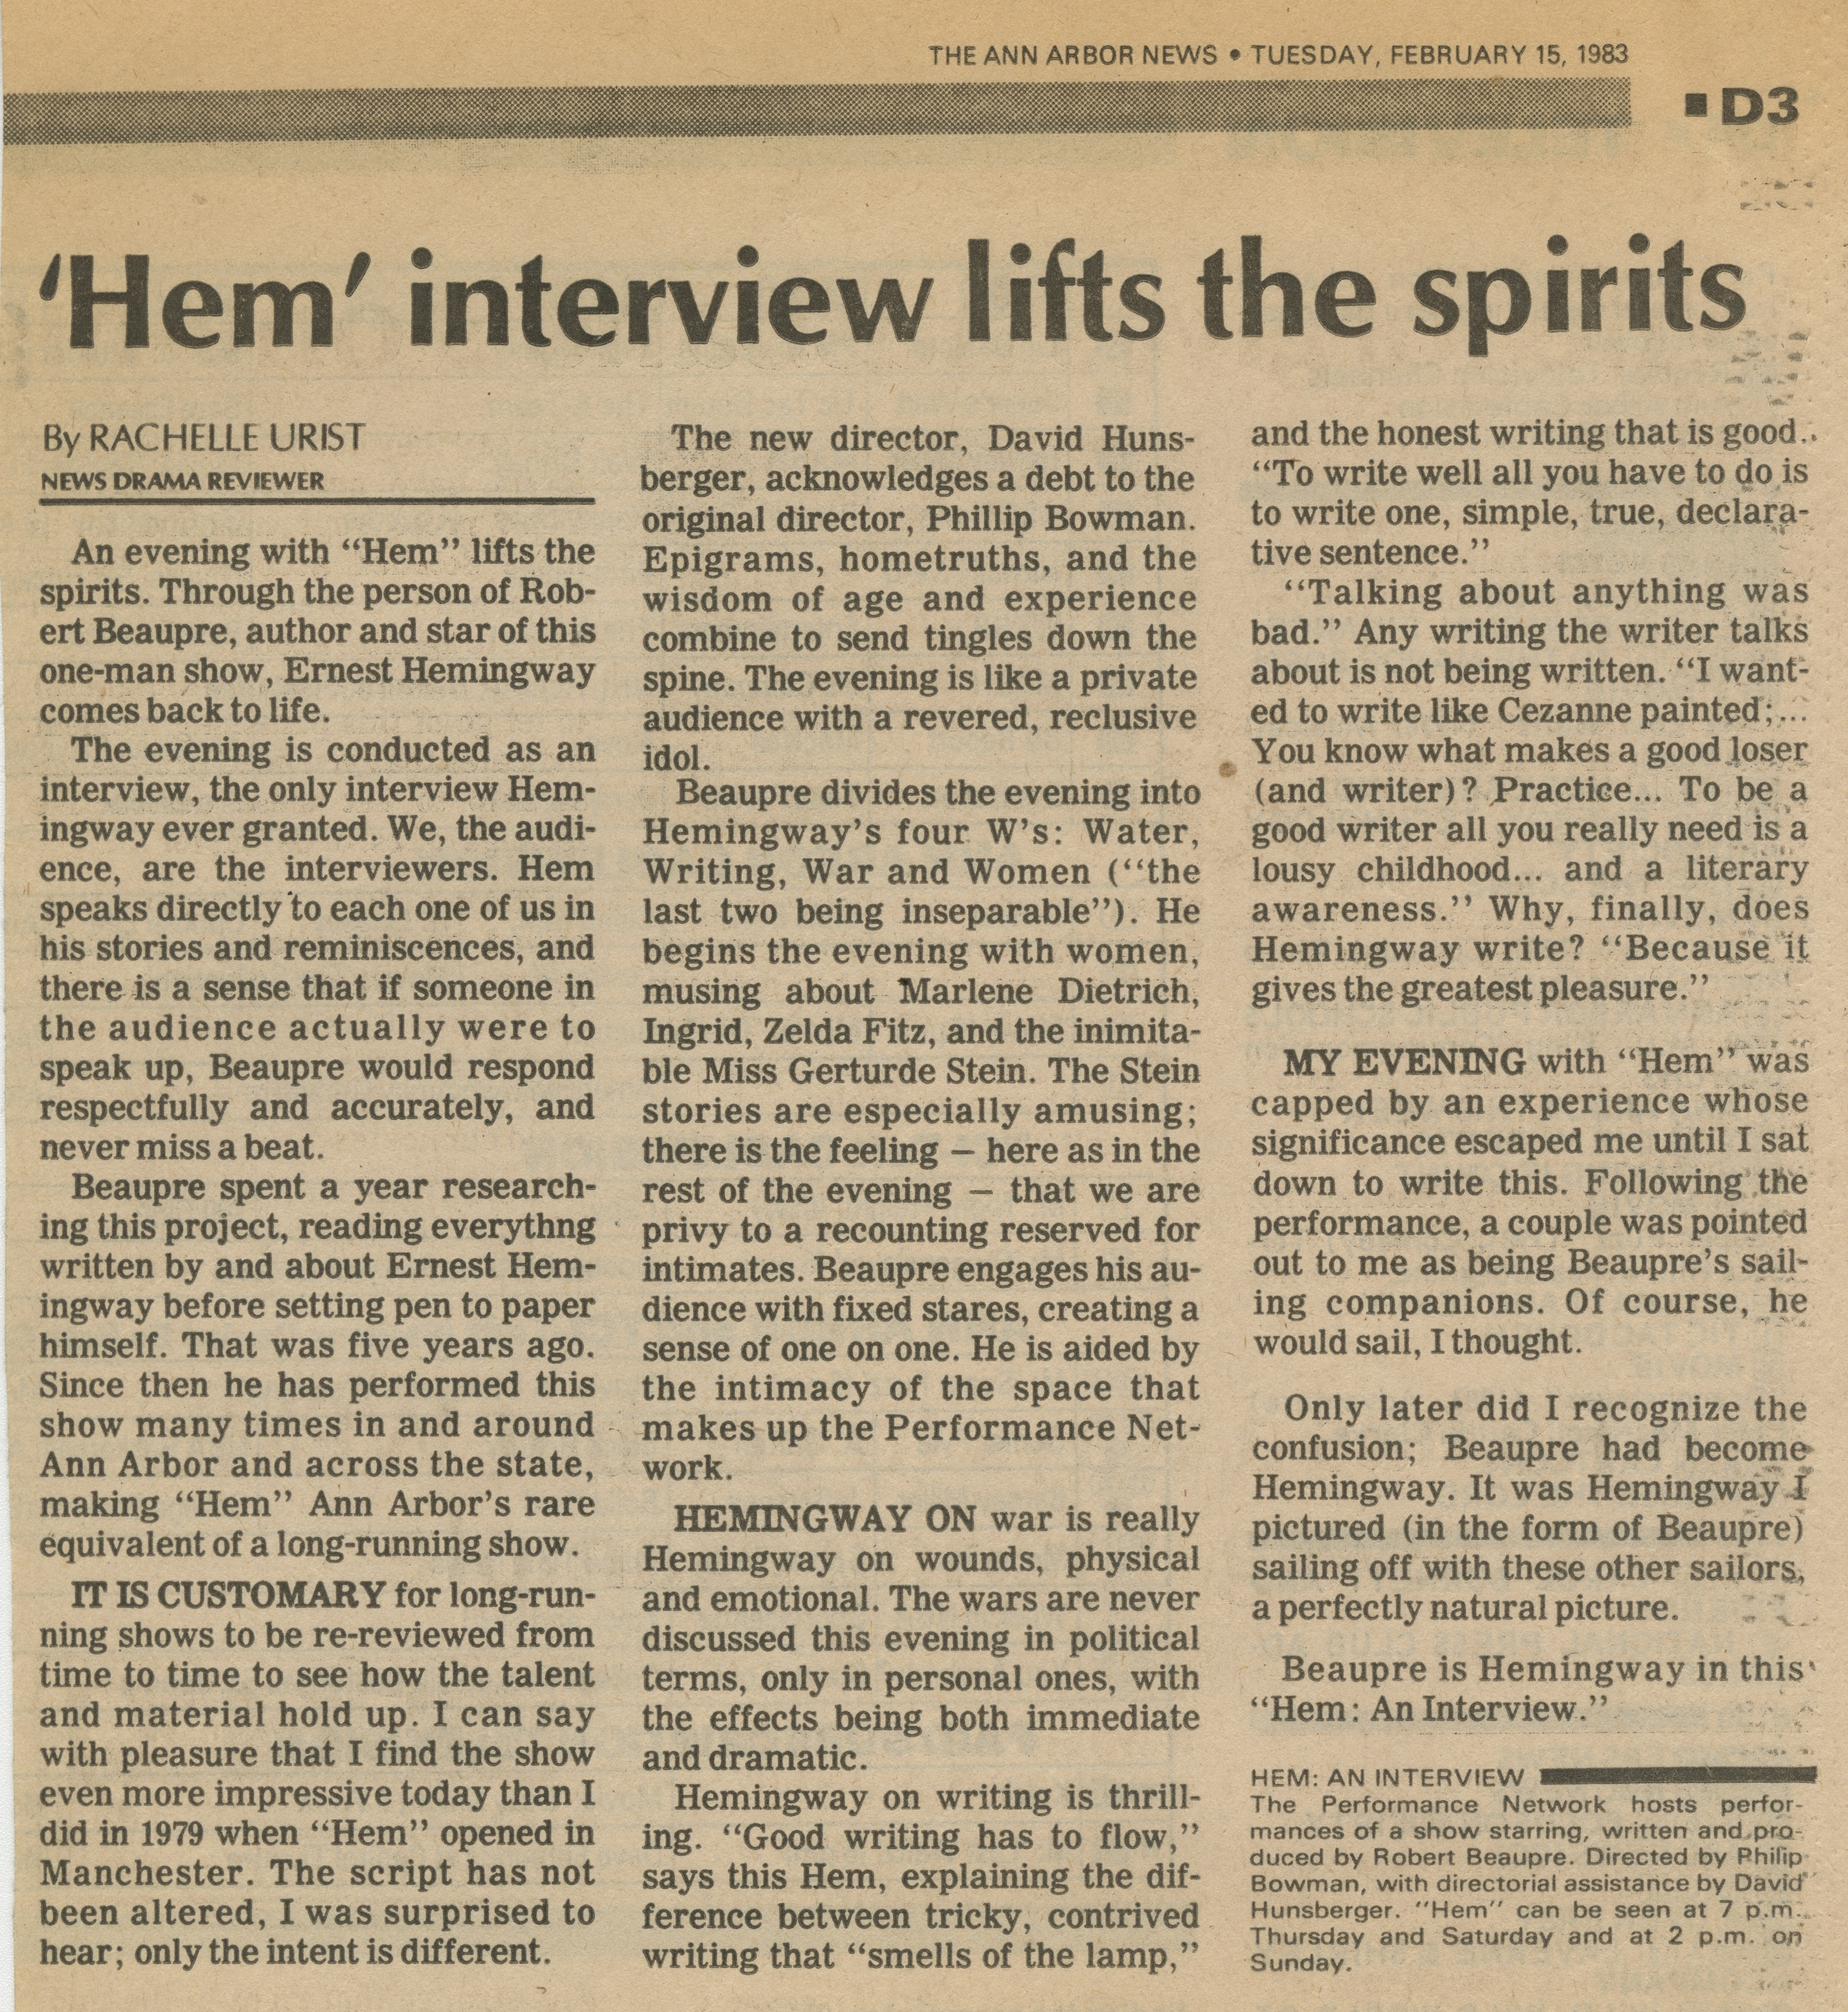 'Hem' interview lifts the spirits image